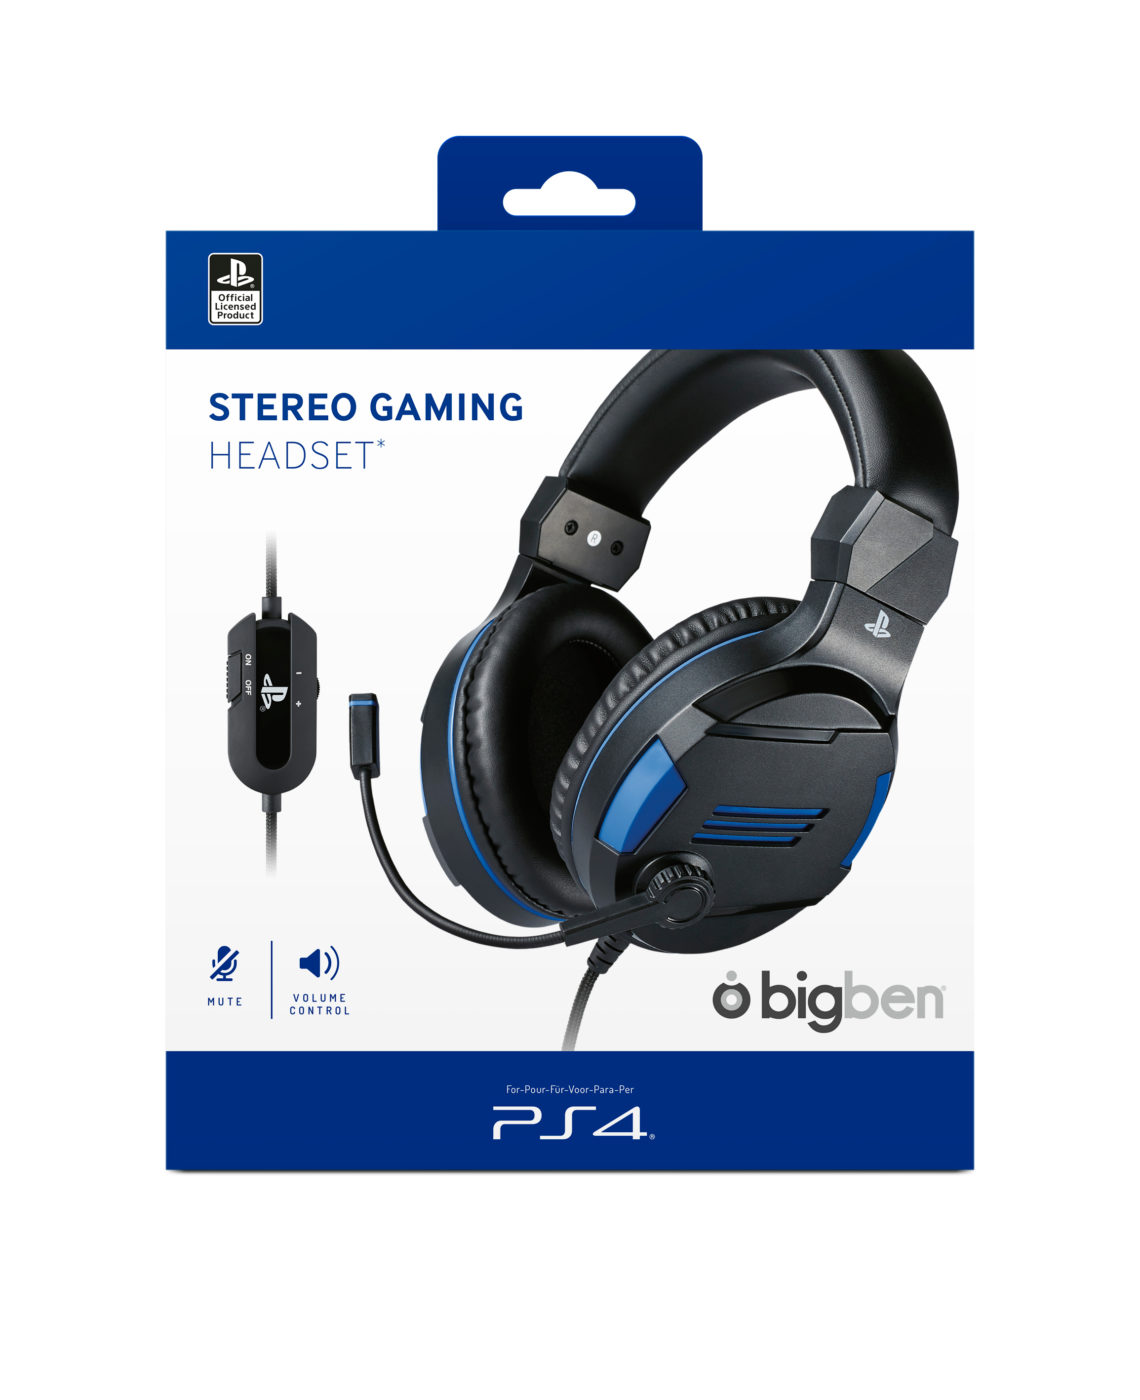 Strereo gaming headset for PS4™, PC, MAC and mobile devices - Image  #2tutu#4tutu#6tutu#7